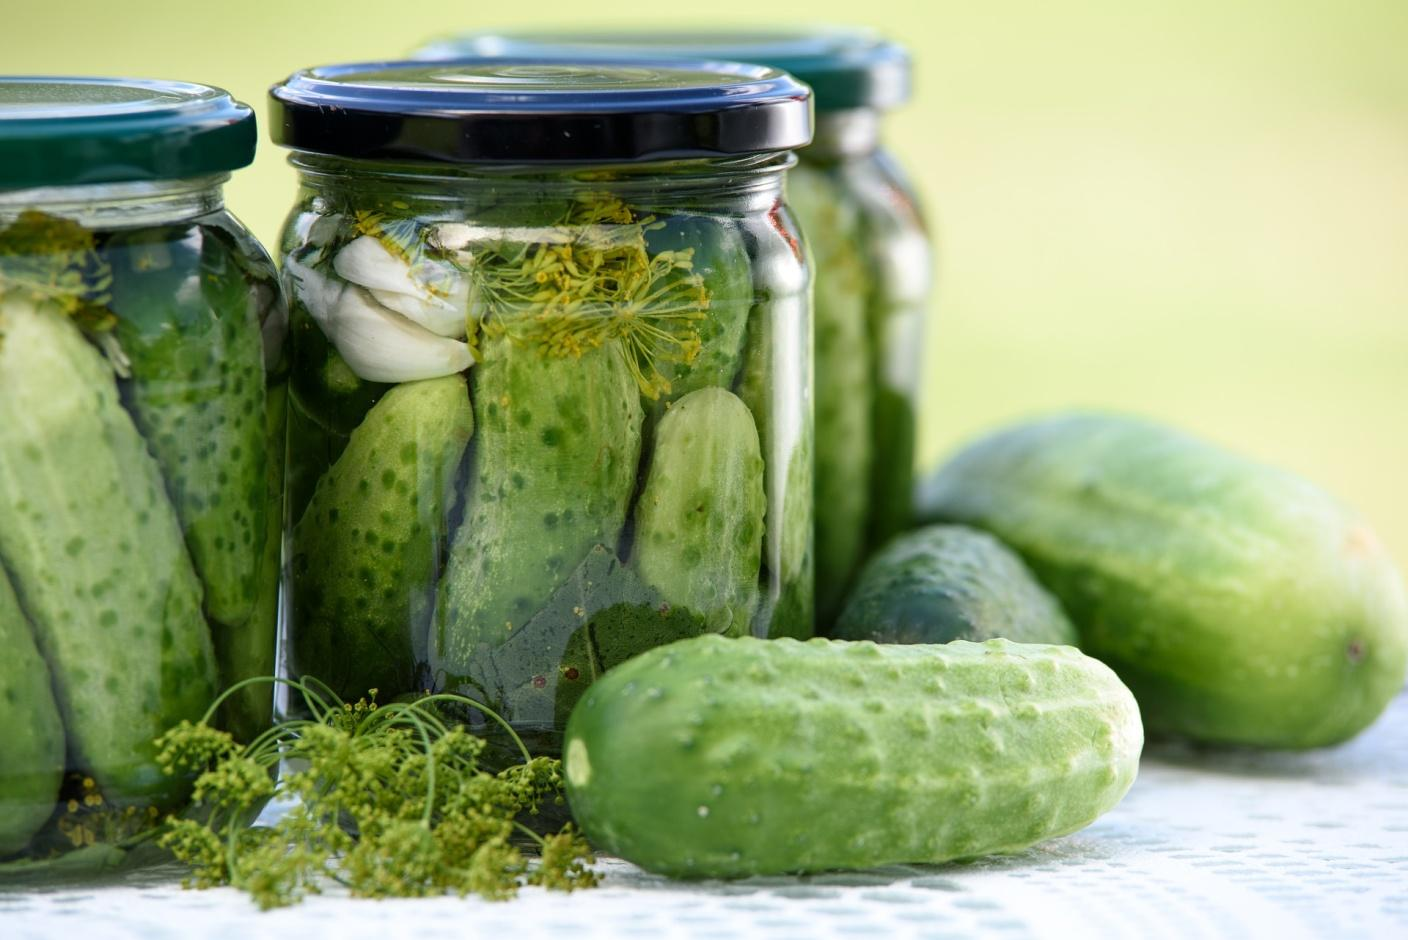 C:\Users\Admin\Downloads\pickled-cucumbers-1520638_1920 (1).jpg